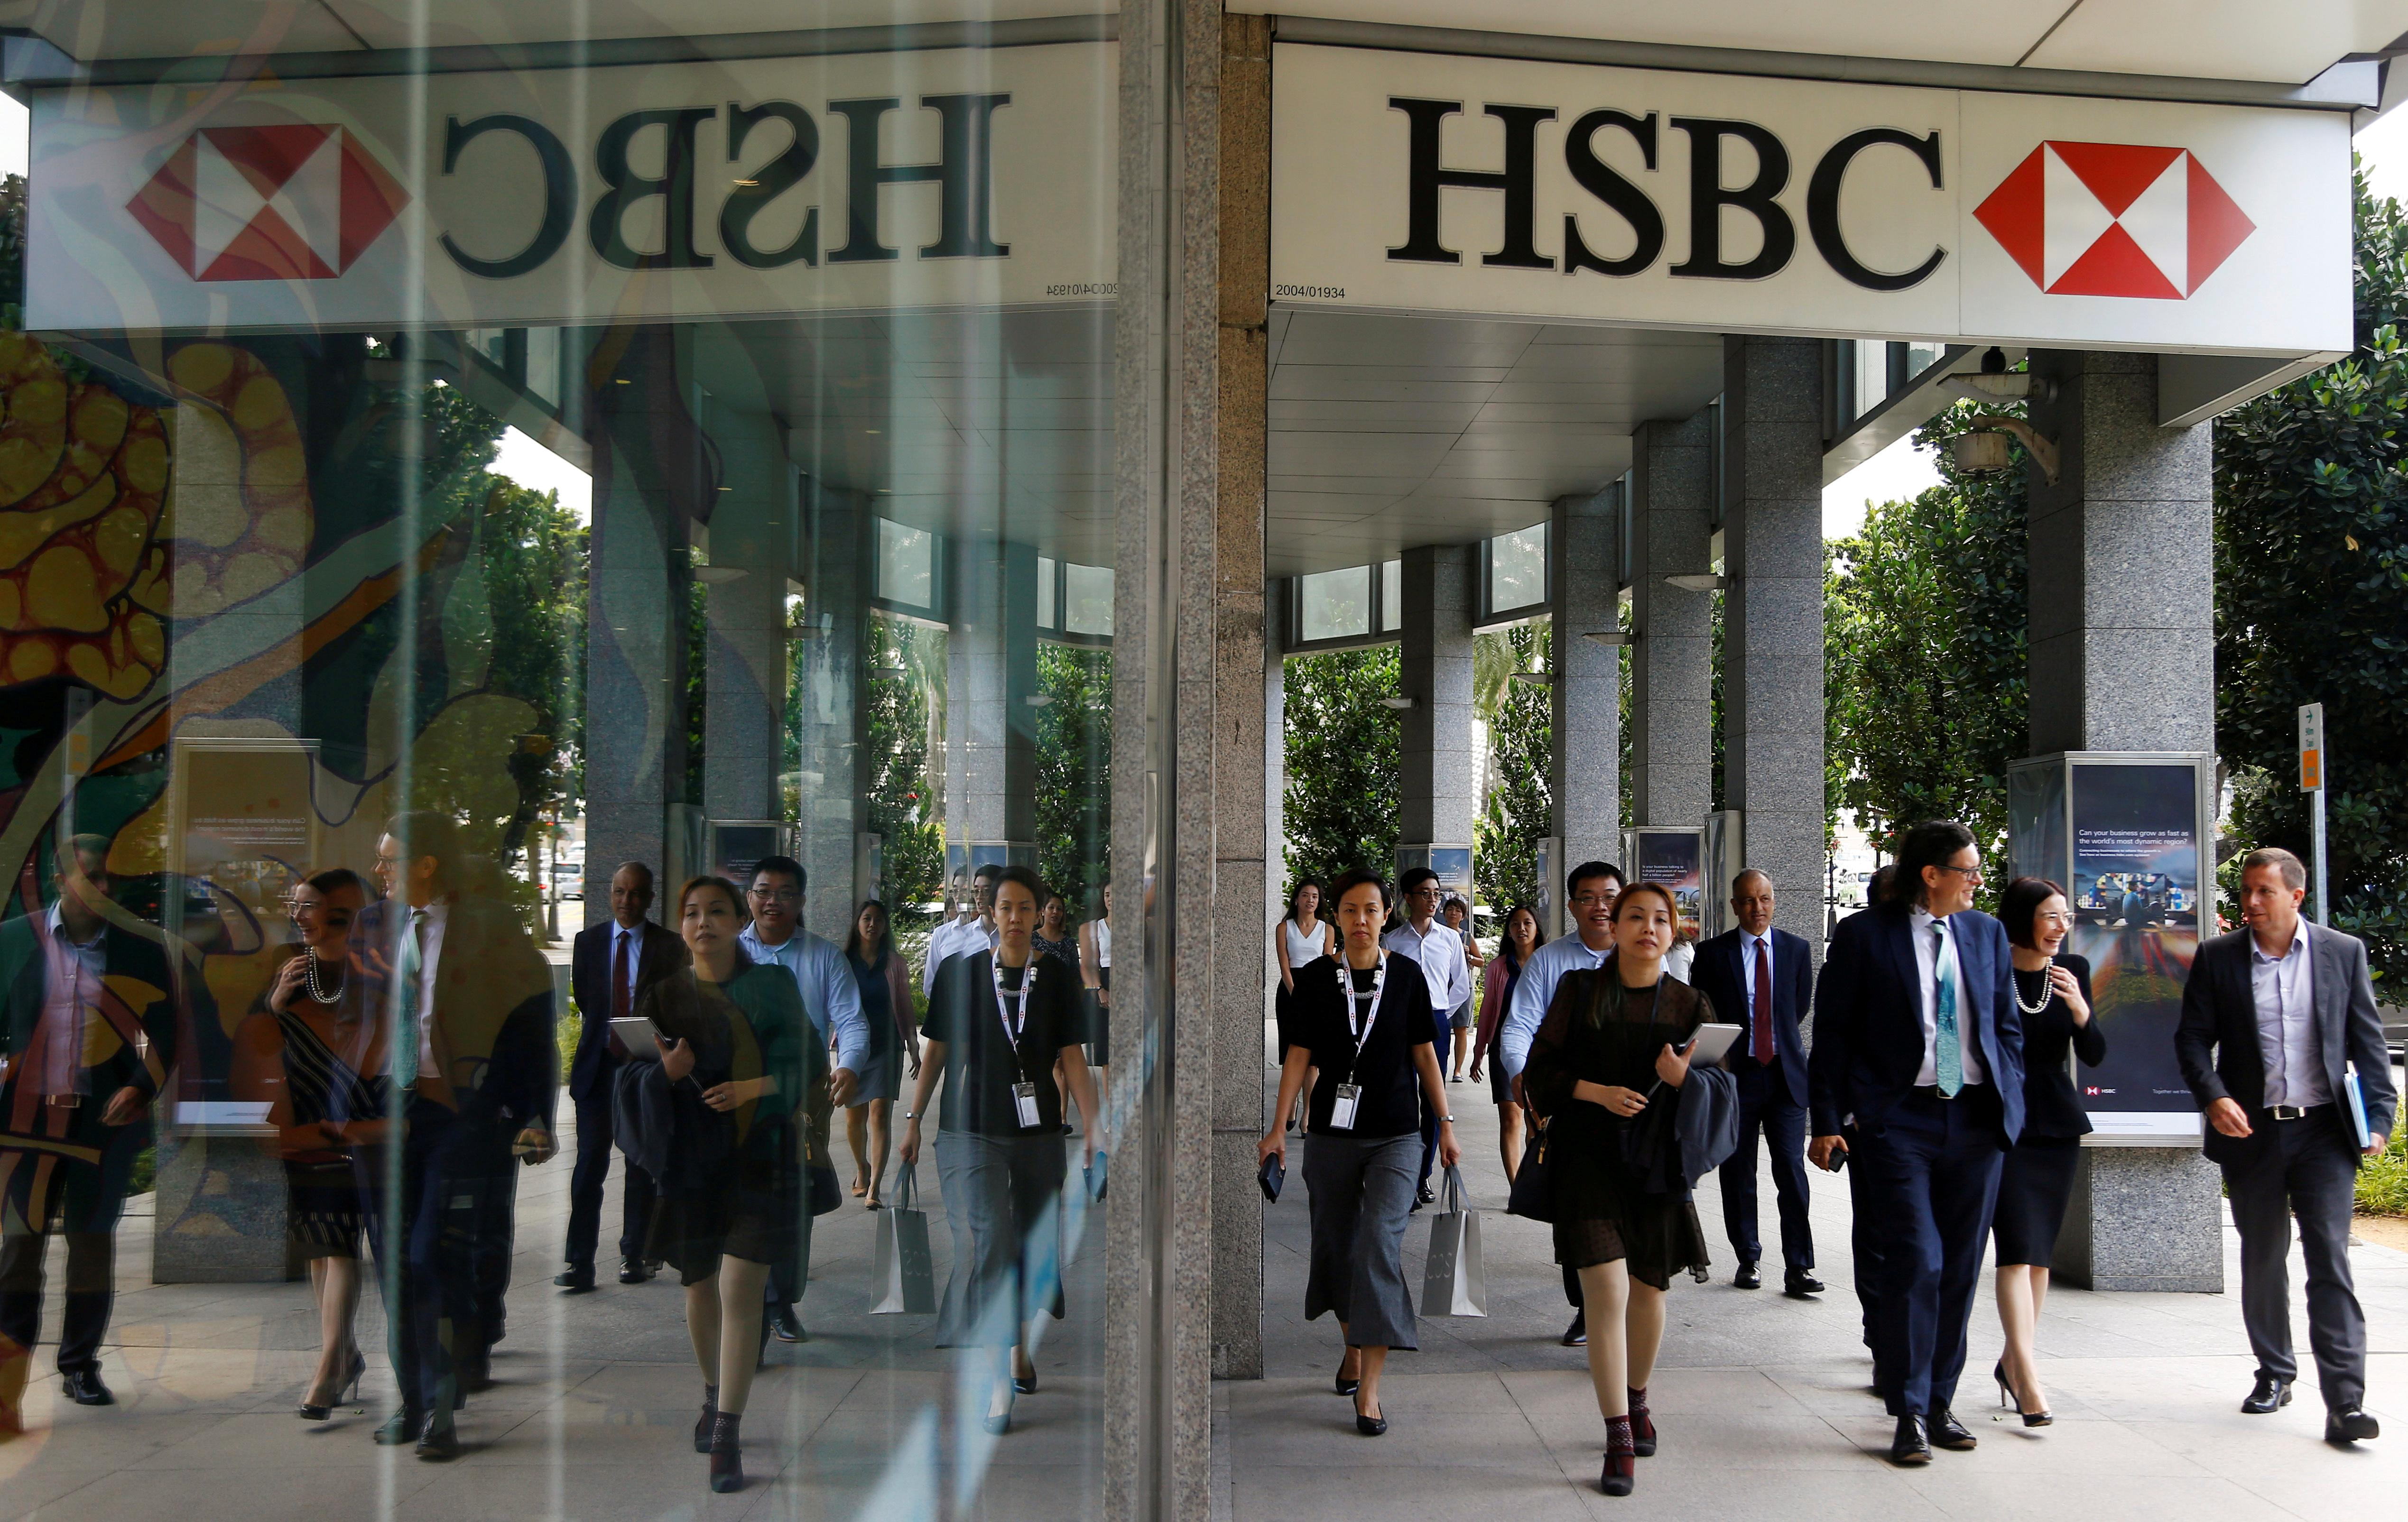 HSBC and RBS set to launch new digital banking platforms